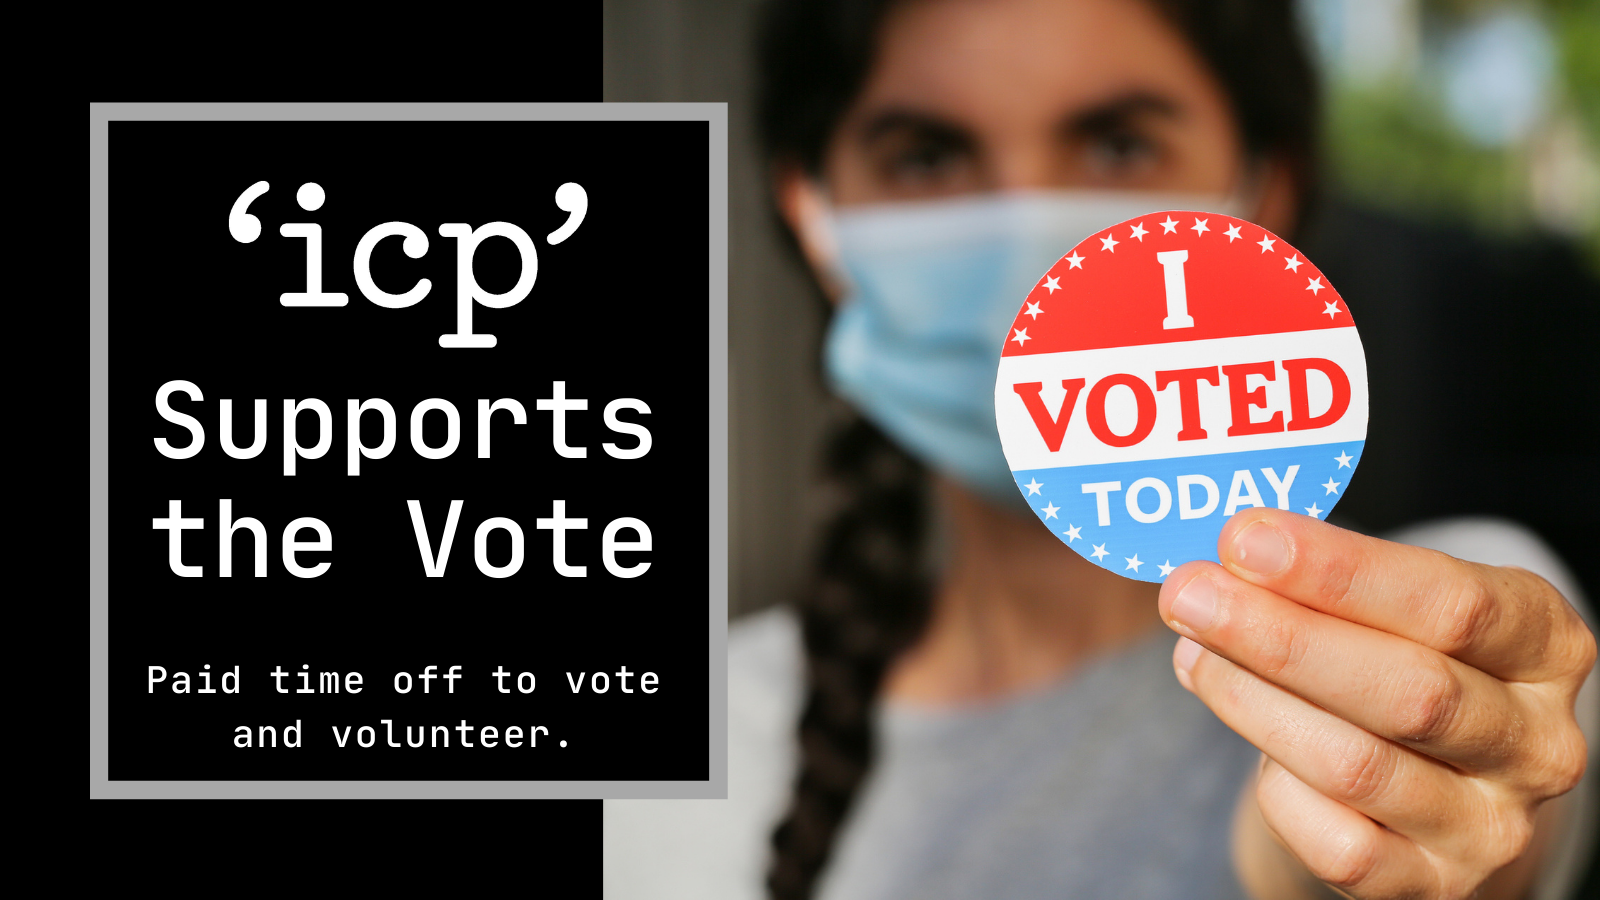 ICP supports the vote